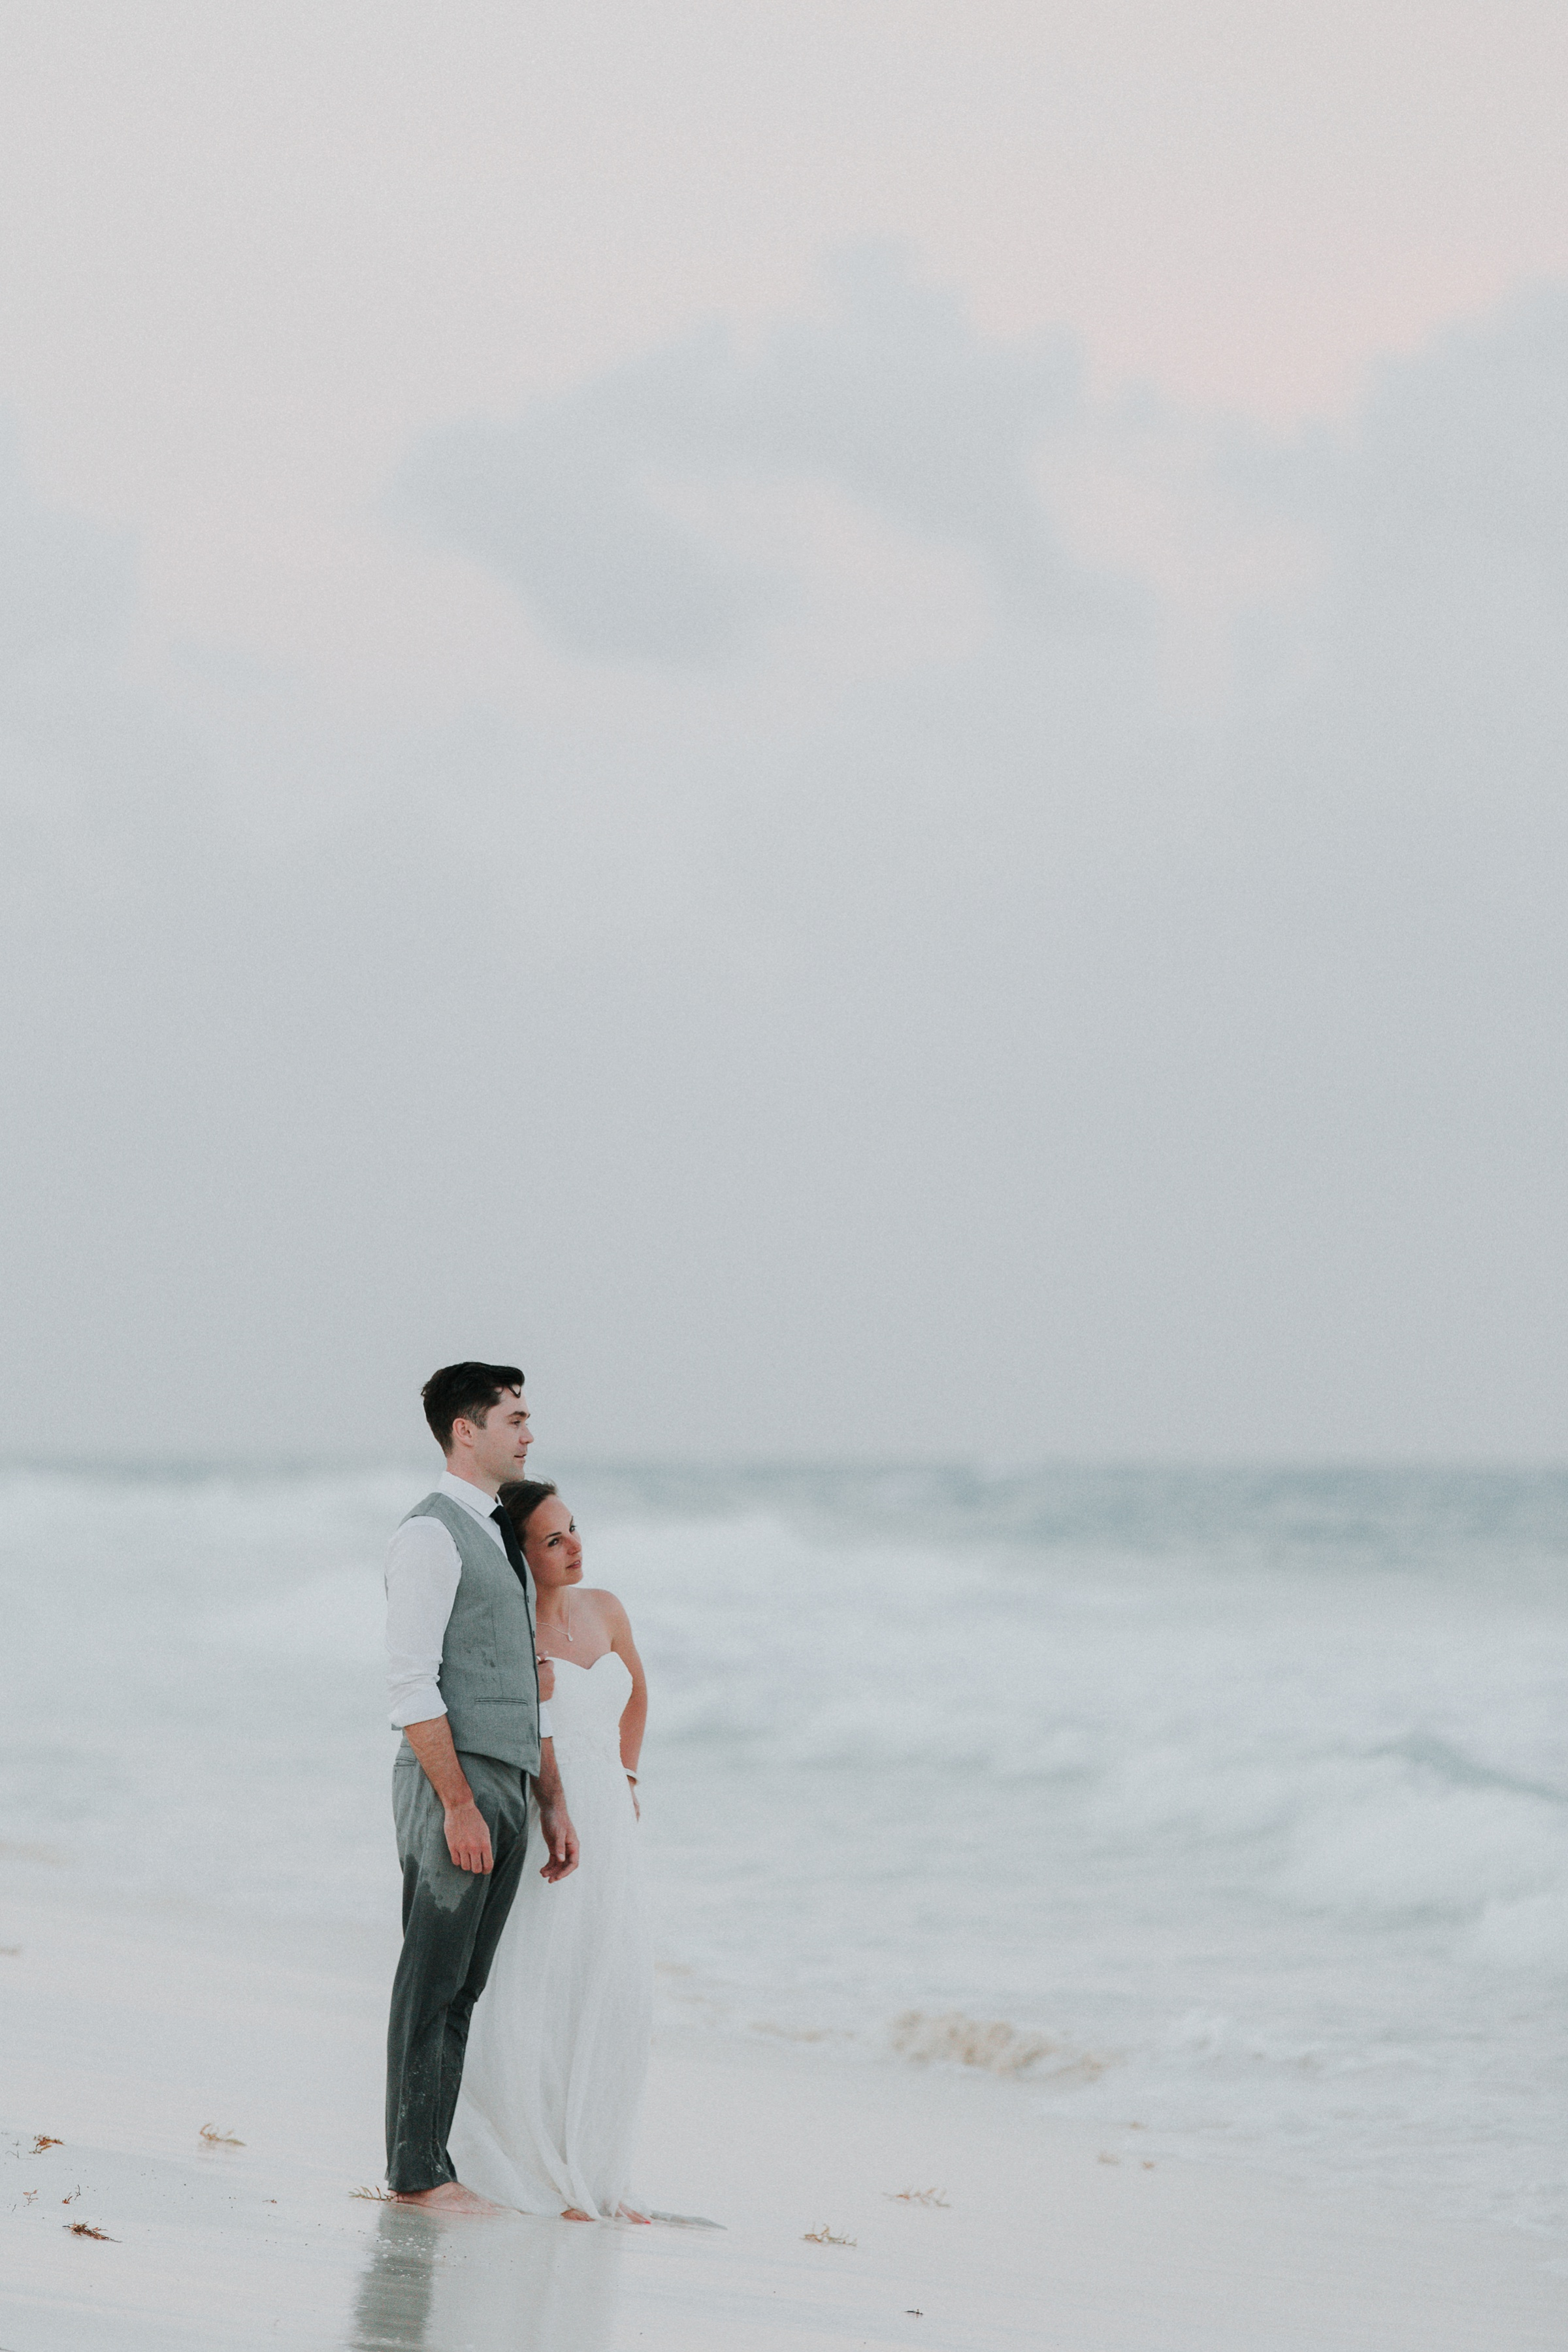 wedding photo by Julie MacKinnon Photography Destination wedding playing in the ocean